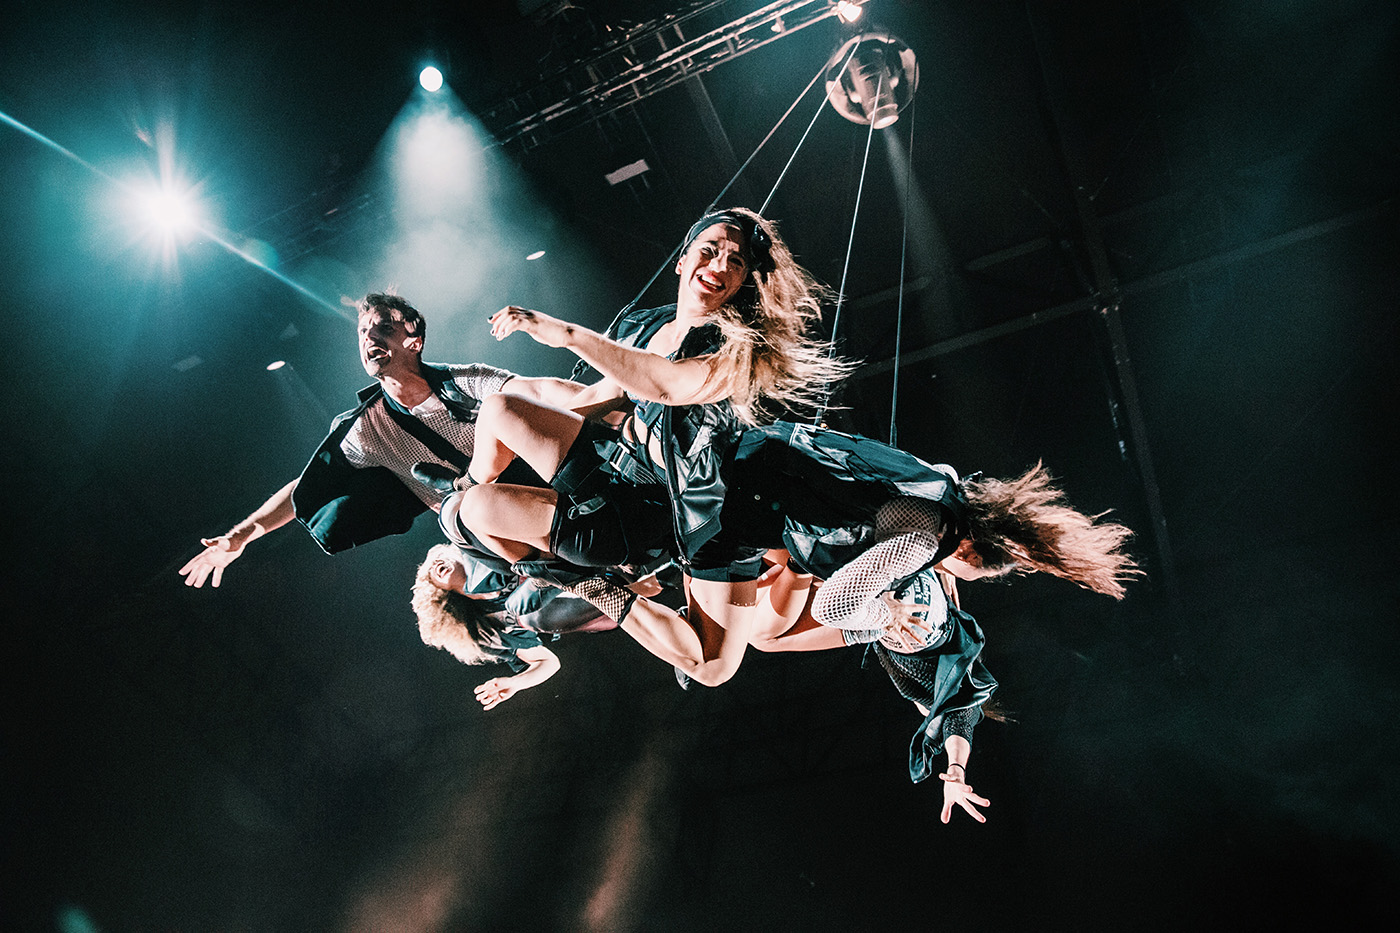 Fuerza Bruta at Singapore Night Festival 2019 - 15 flying group